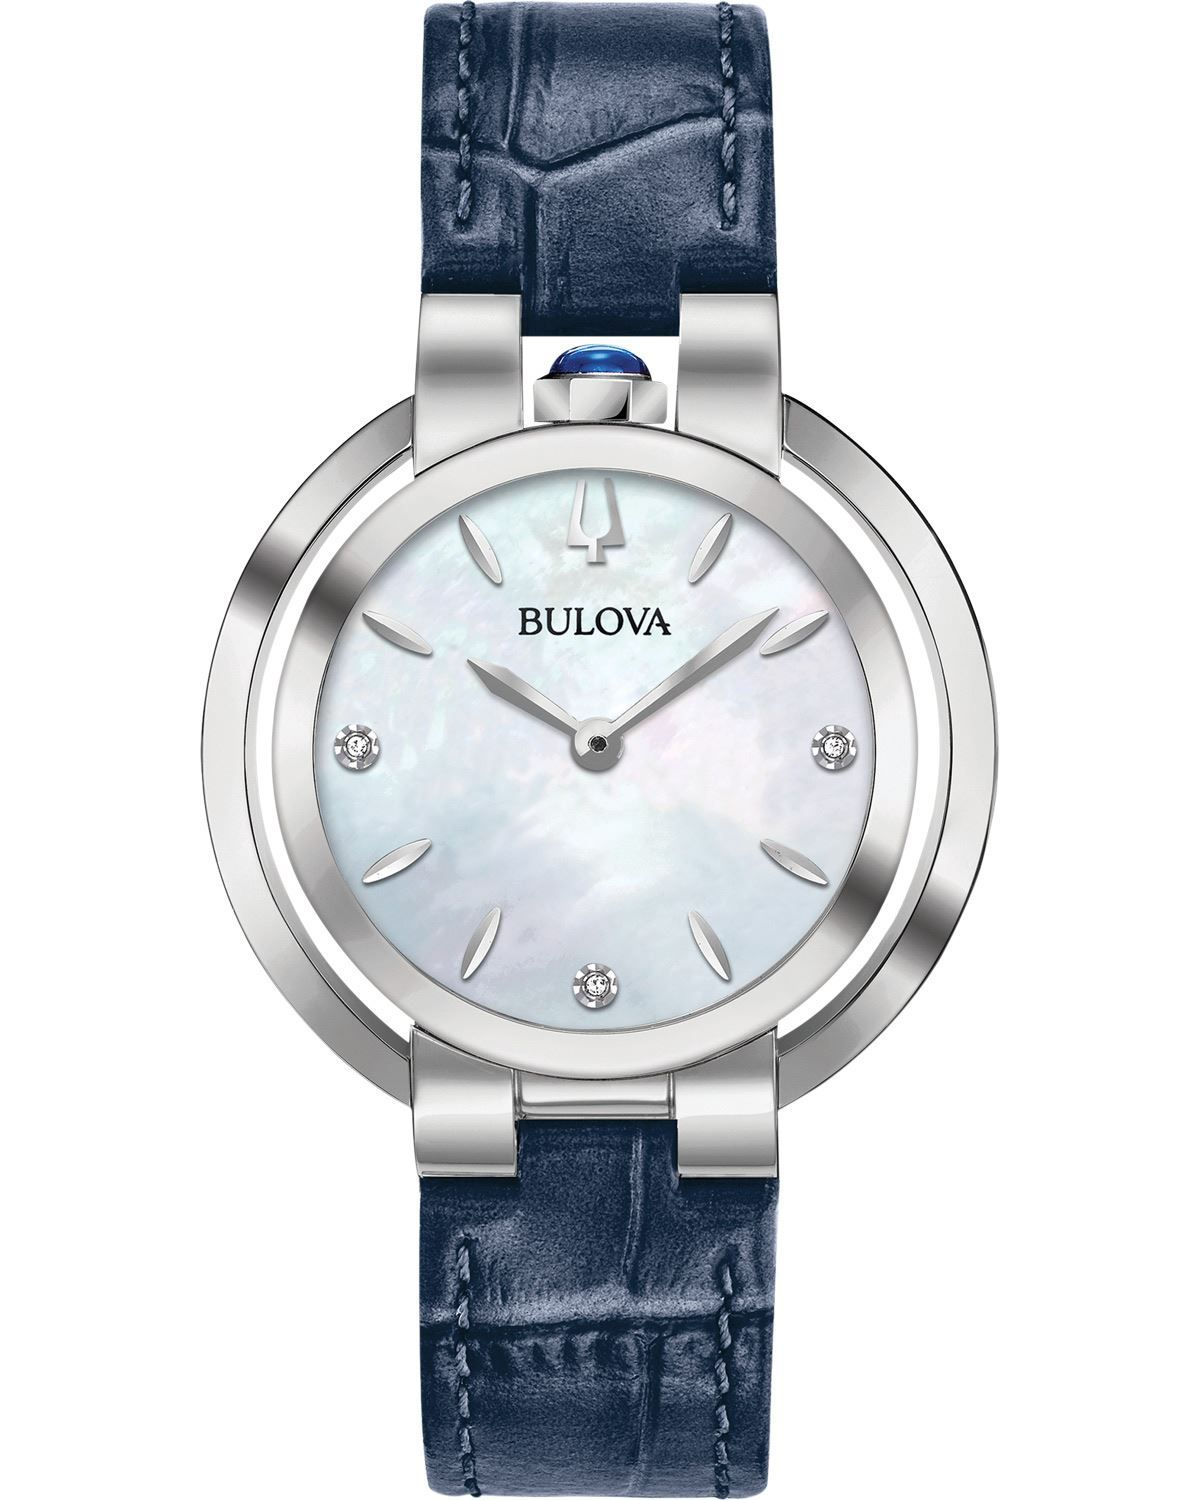 59ccb04ce BULOVA Rubaiyat Diamond Dial Ladies Blue Leather Strap 96P196 ...